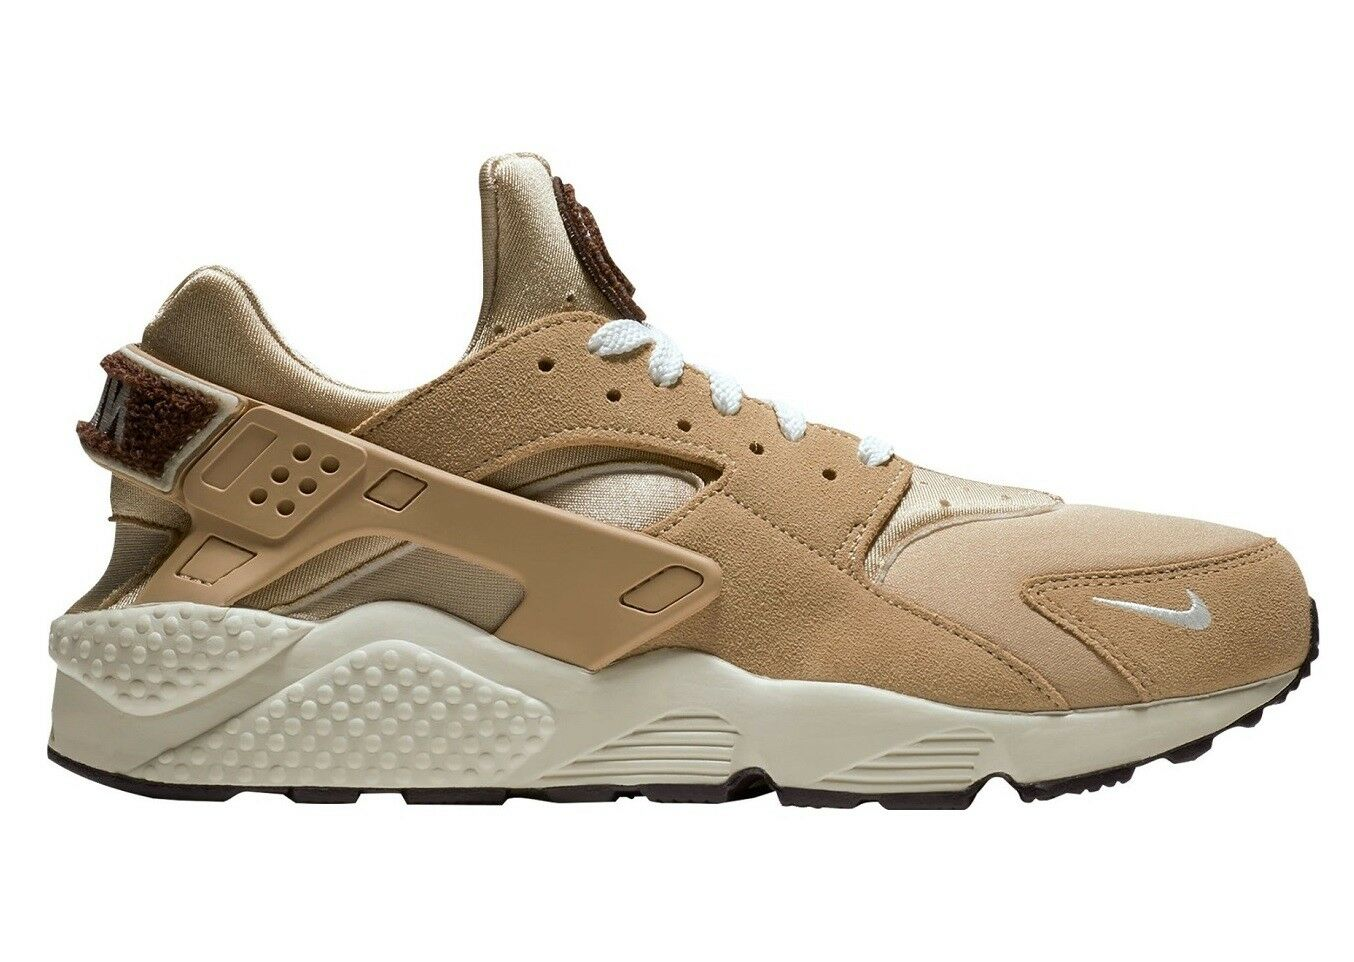 Nike Air Huarache Run Premium Mens 704830-202 Desert Sail Running shoes Size 7.5